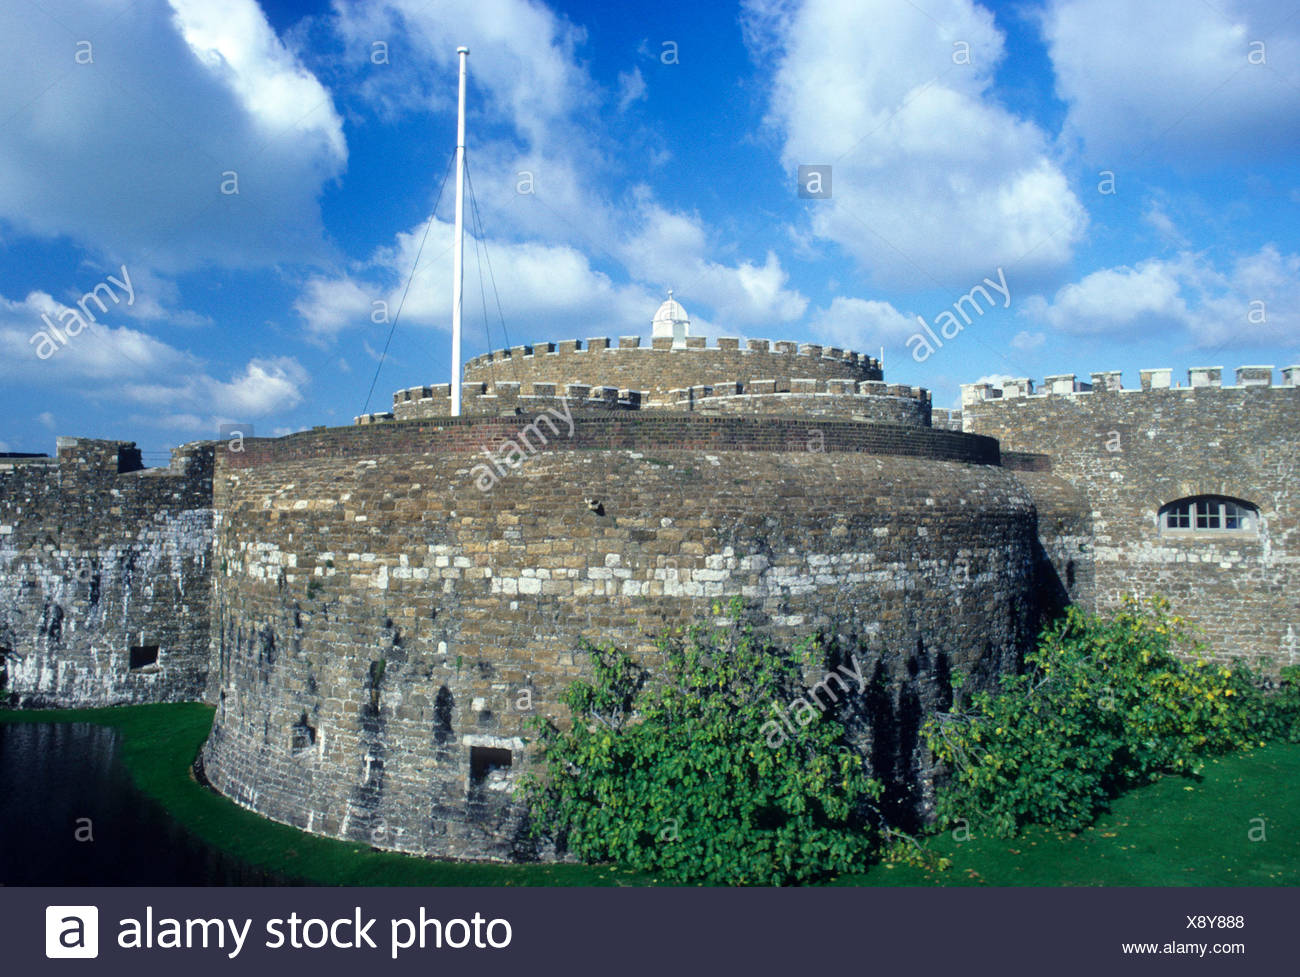 Deal Castle Kent 16th century King Henry 8th English Channel defence defensive moated England UK - Stock Image